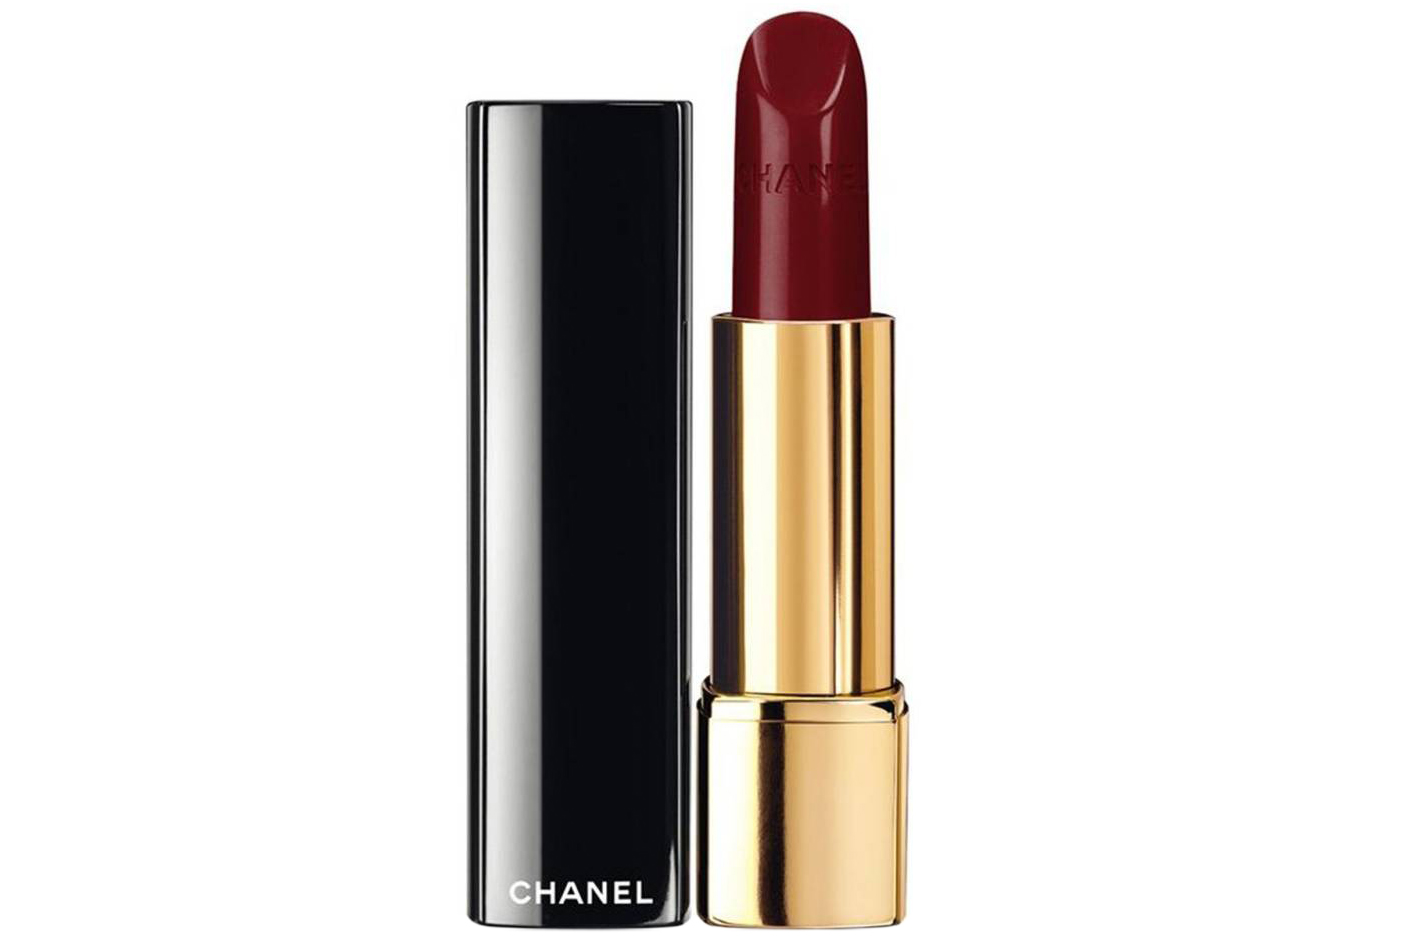 Chanel Rouge Allure Luminous Intense Lip Colour in Ultraberry